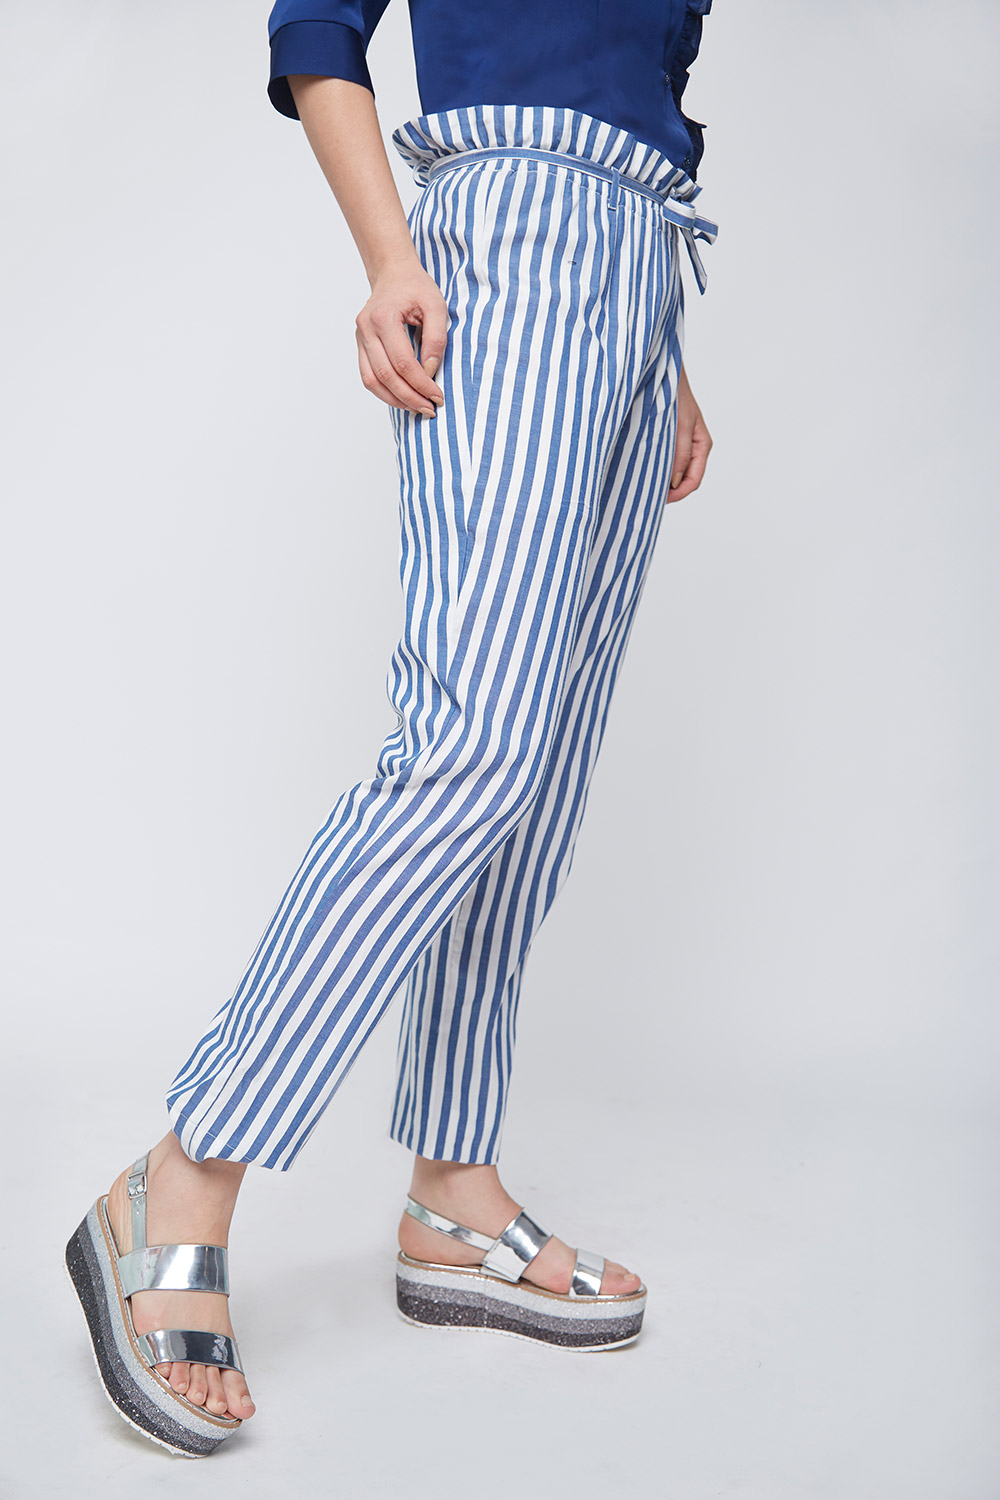 Ruffle Waist Striped Trouser -3